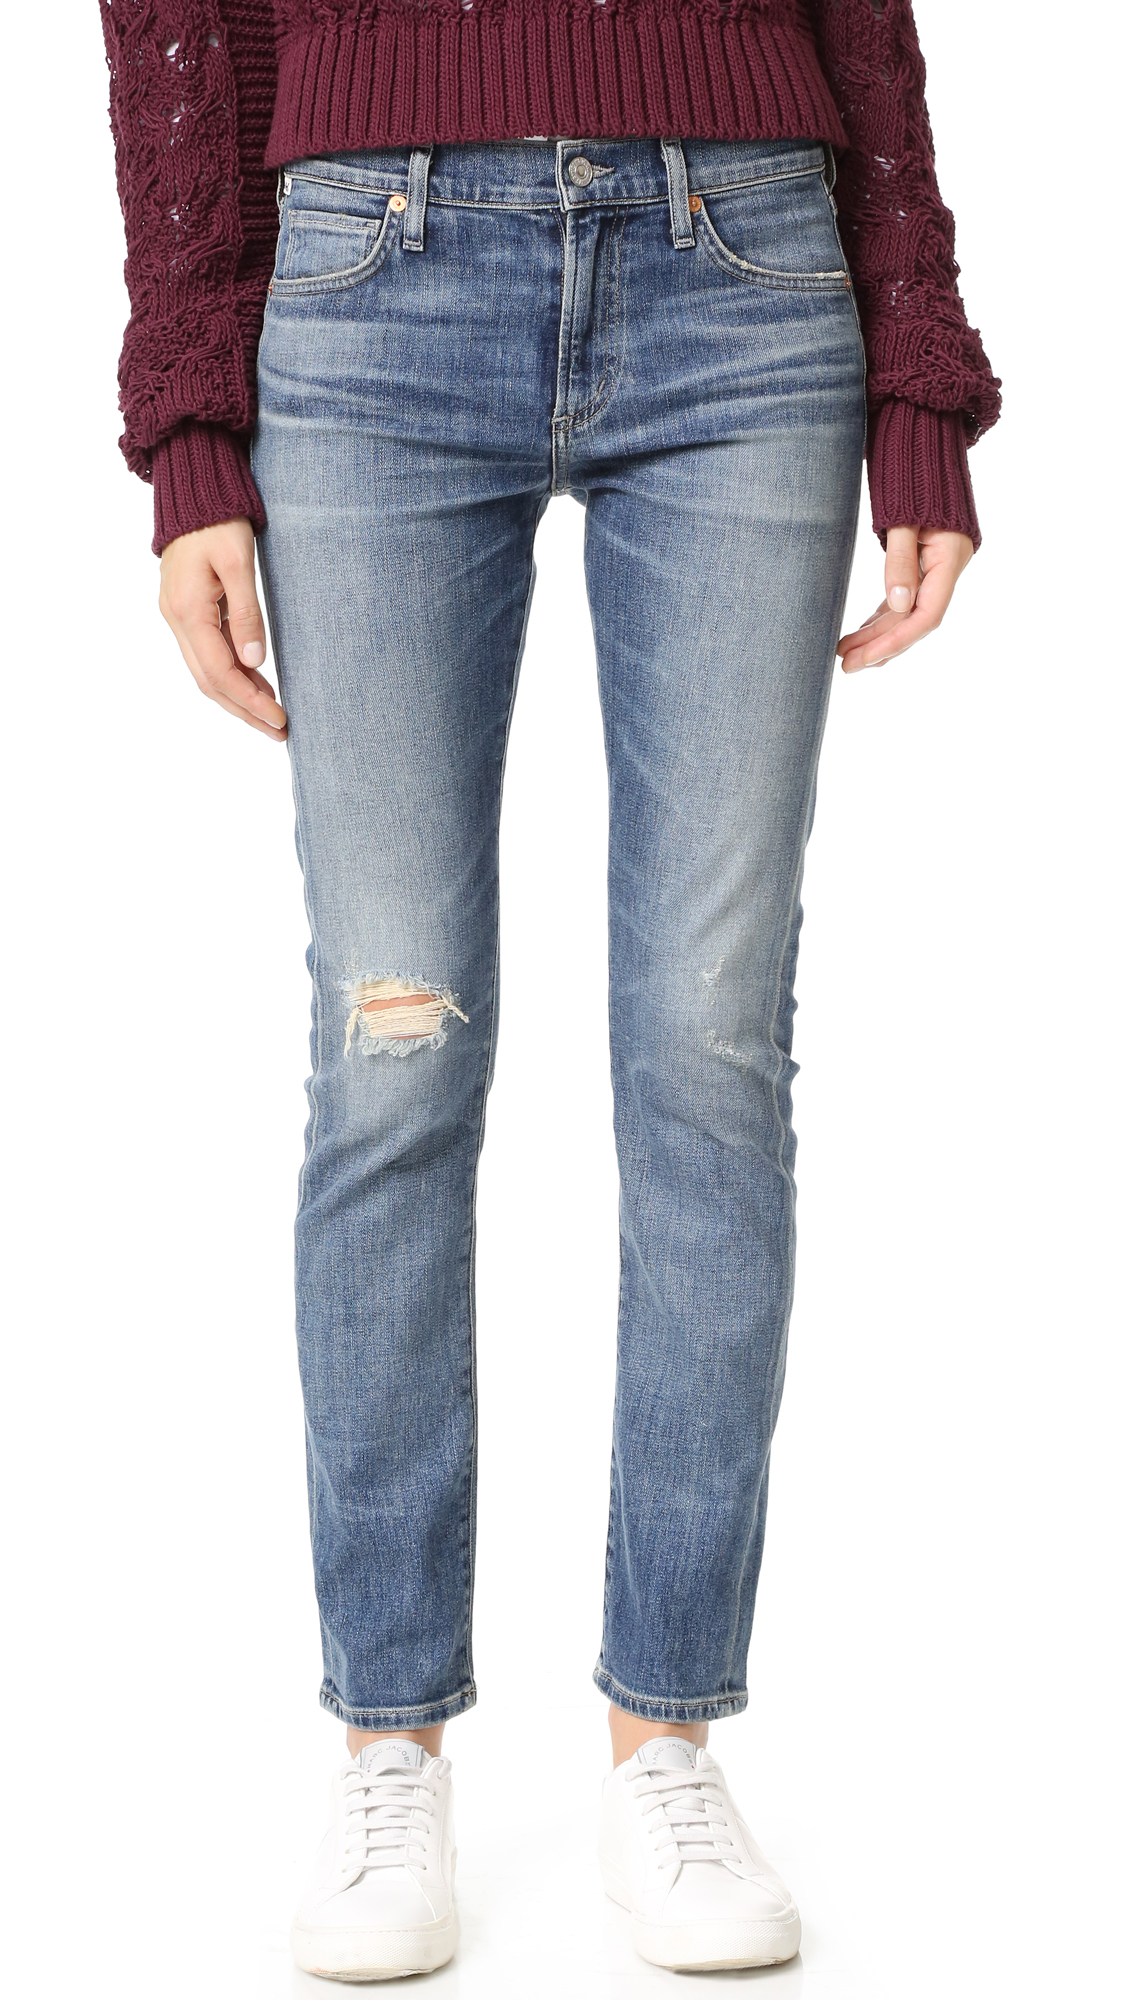 Citizens Of Humanity Agnes Mid Rise Slim Straight Jeans - Roseland at Shopbop